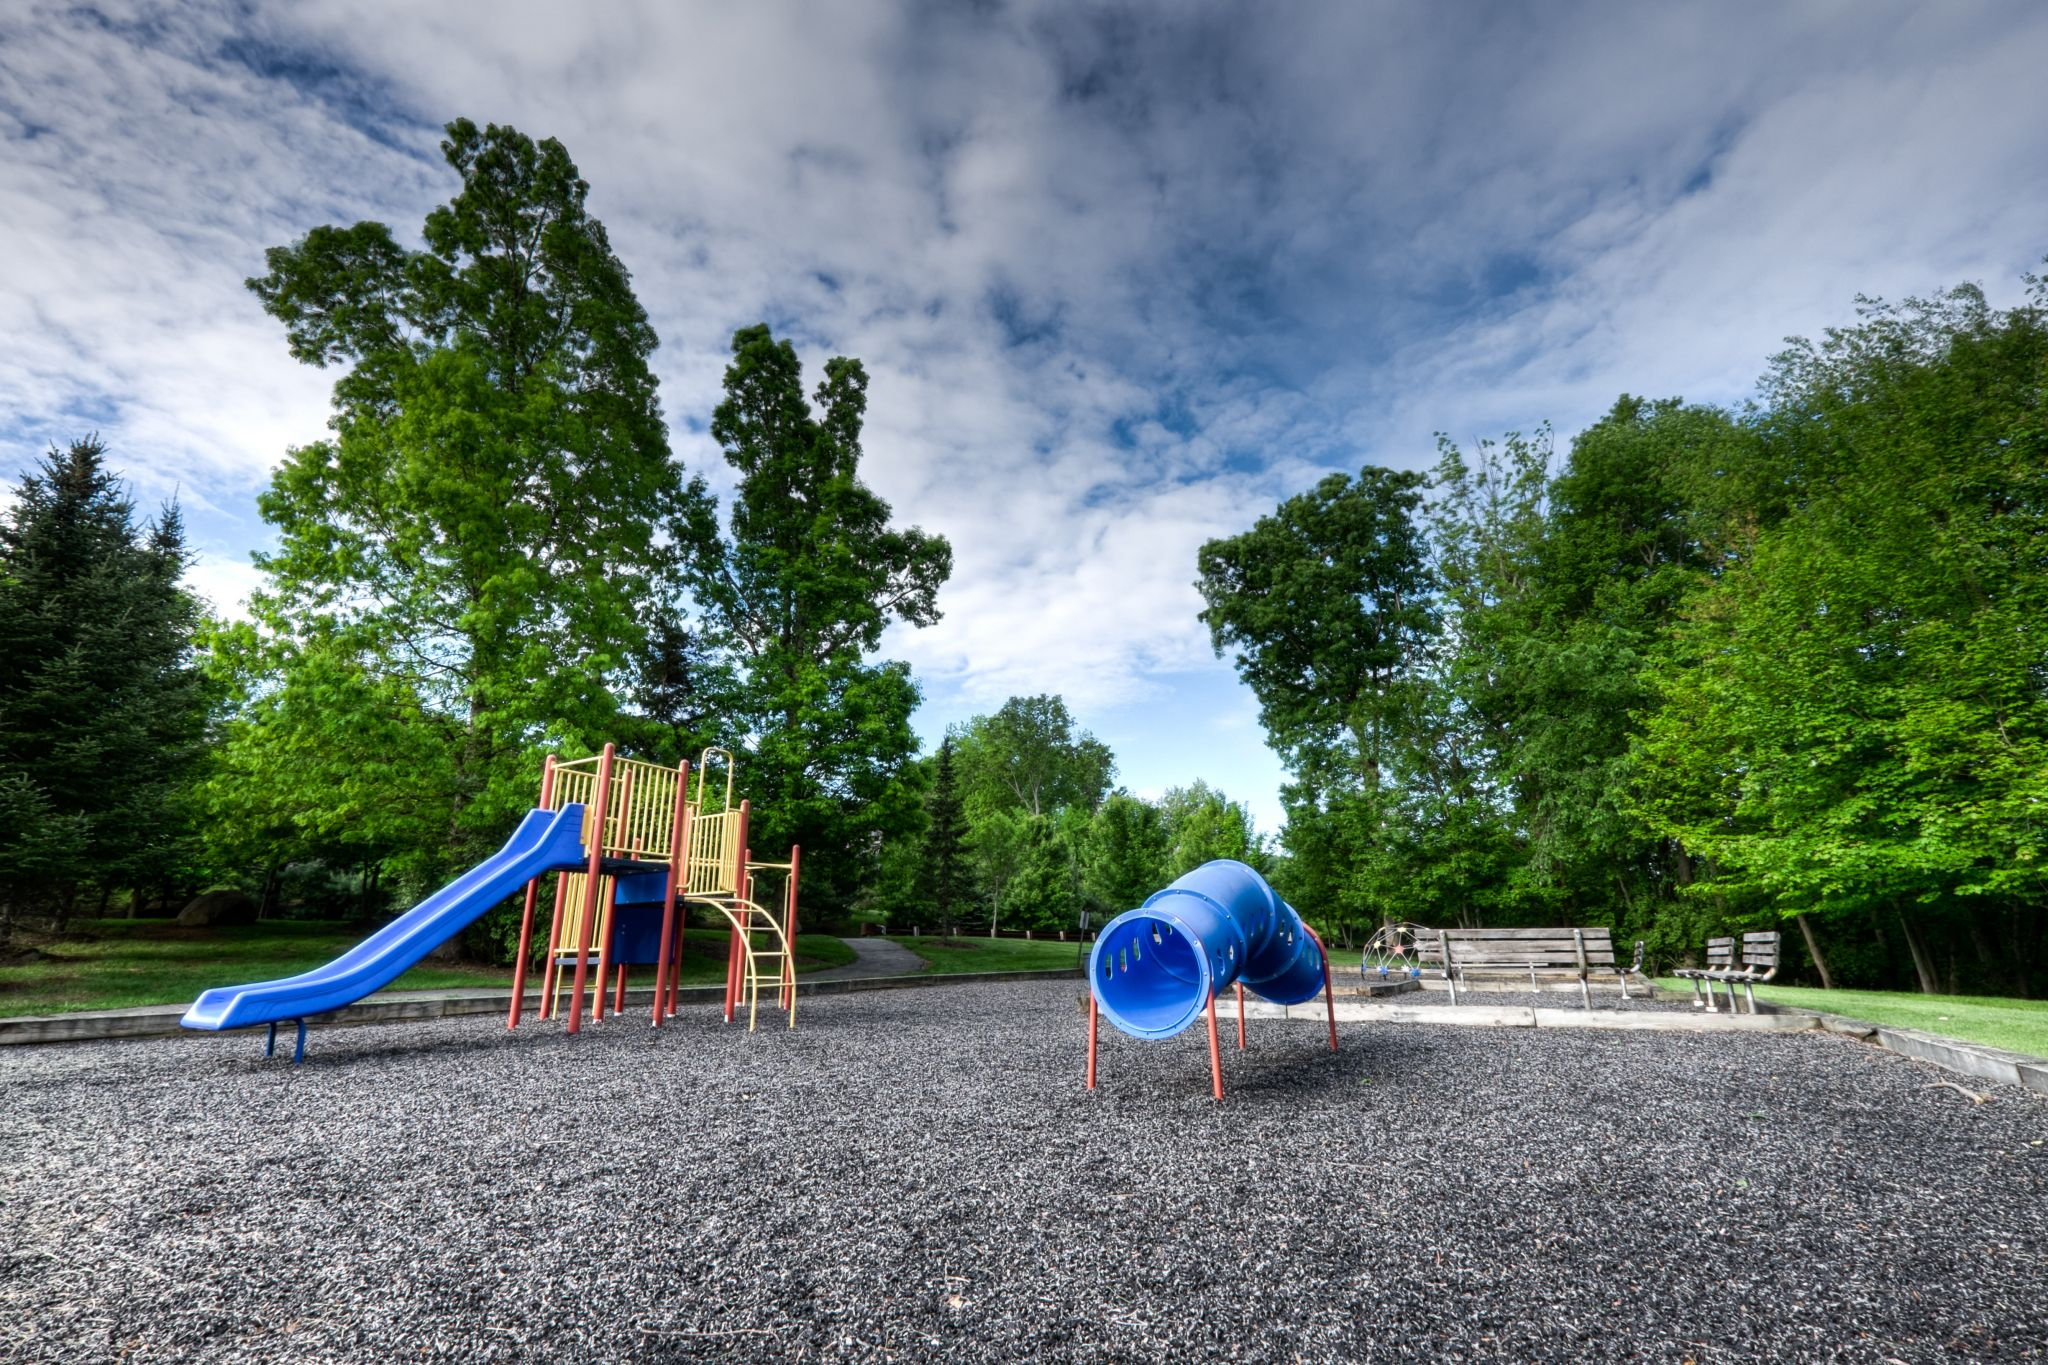 Have you any half term activities planned for the spring half term? Empty children's playground under a stormy sky